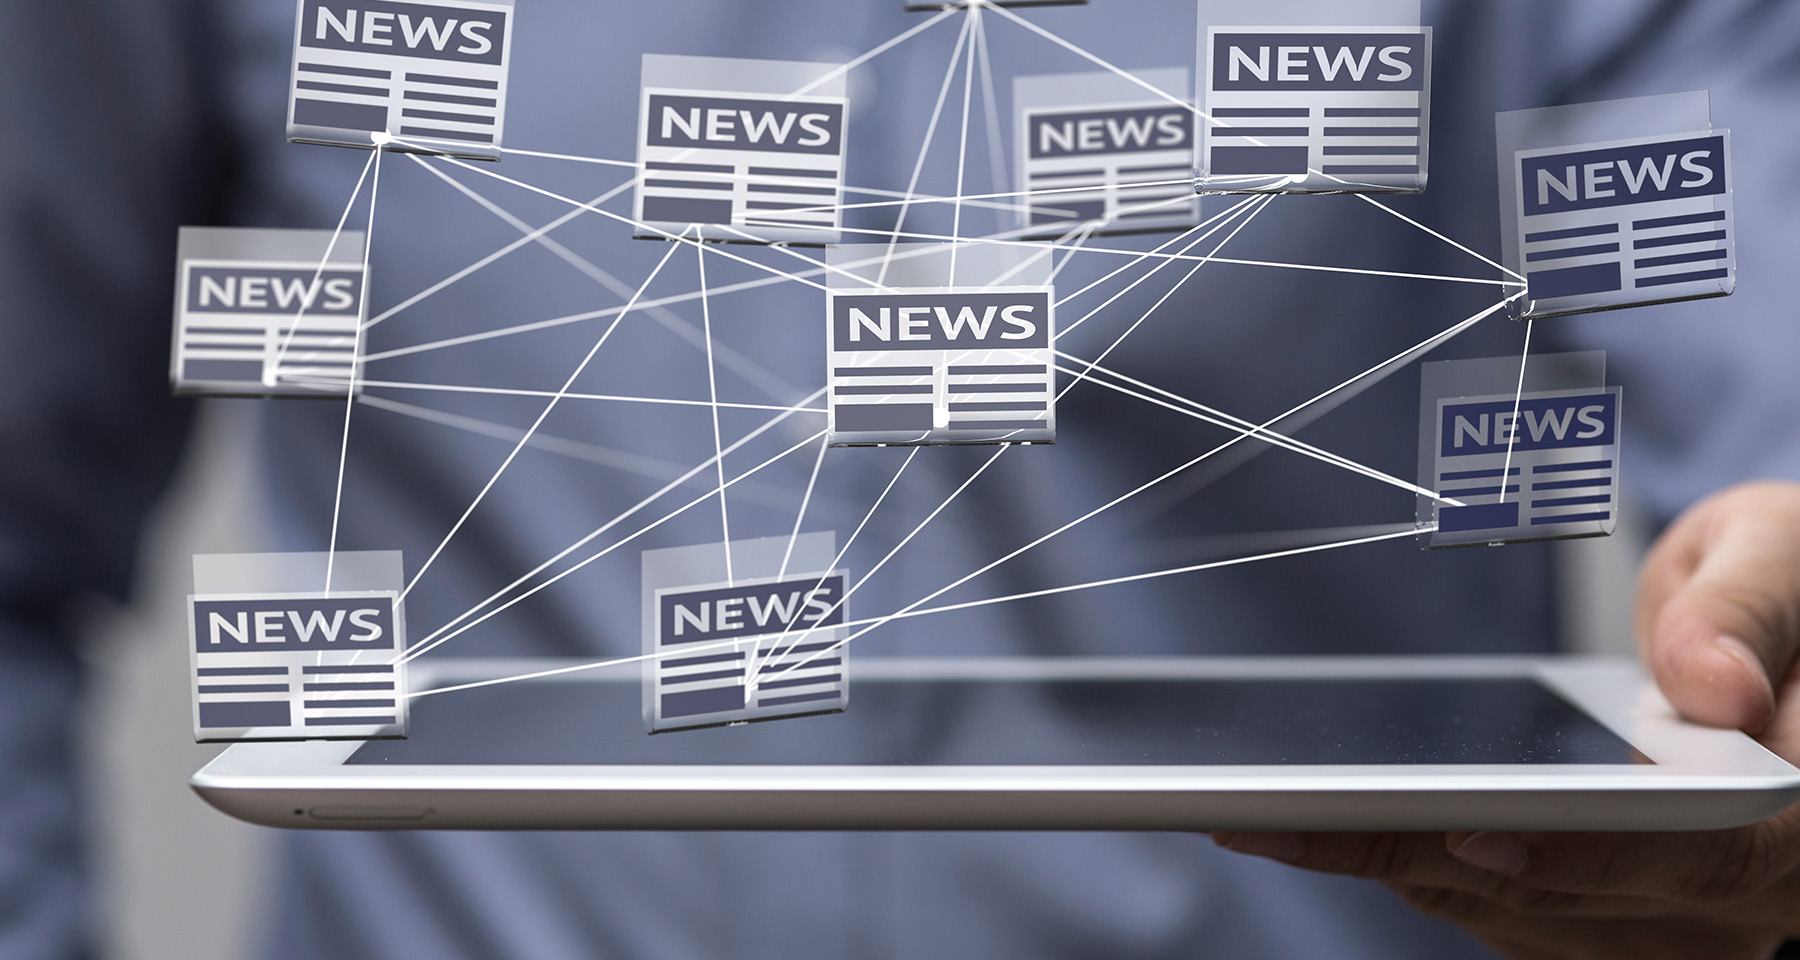 inma research compares 8 social media platforms with news media